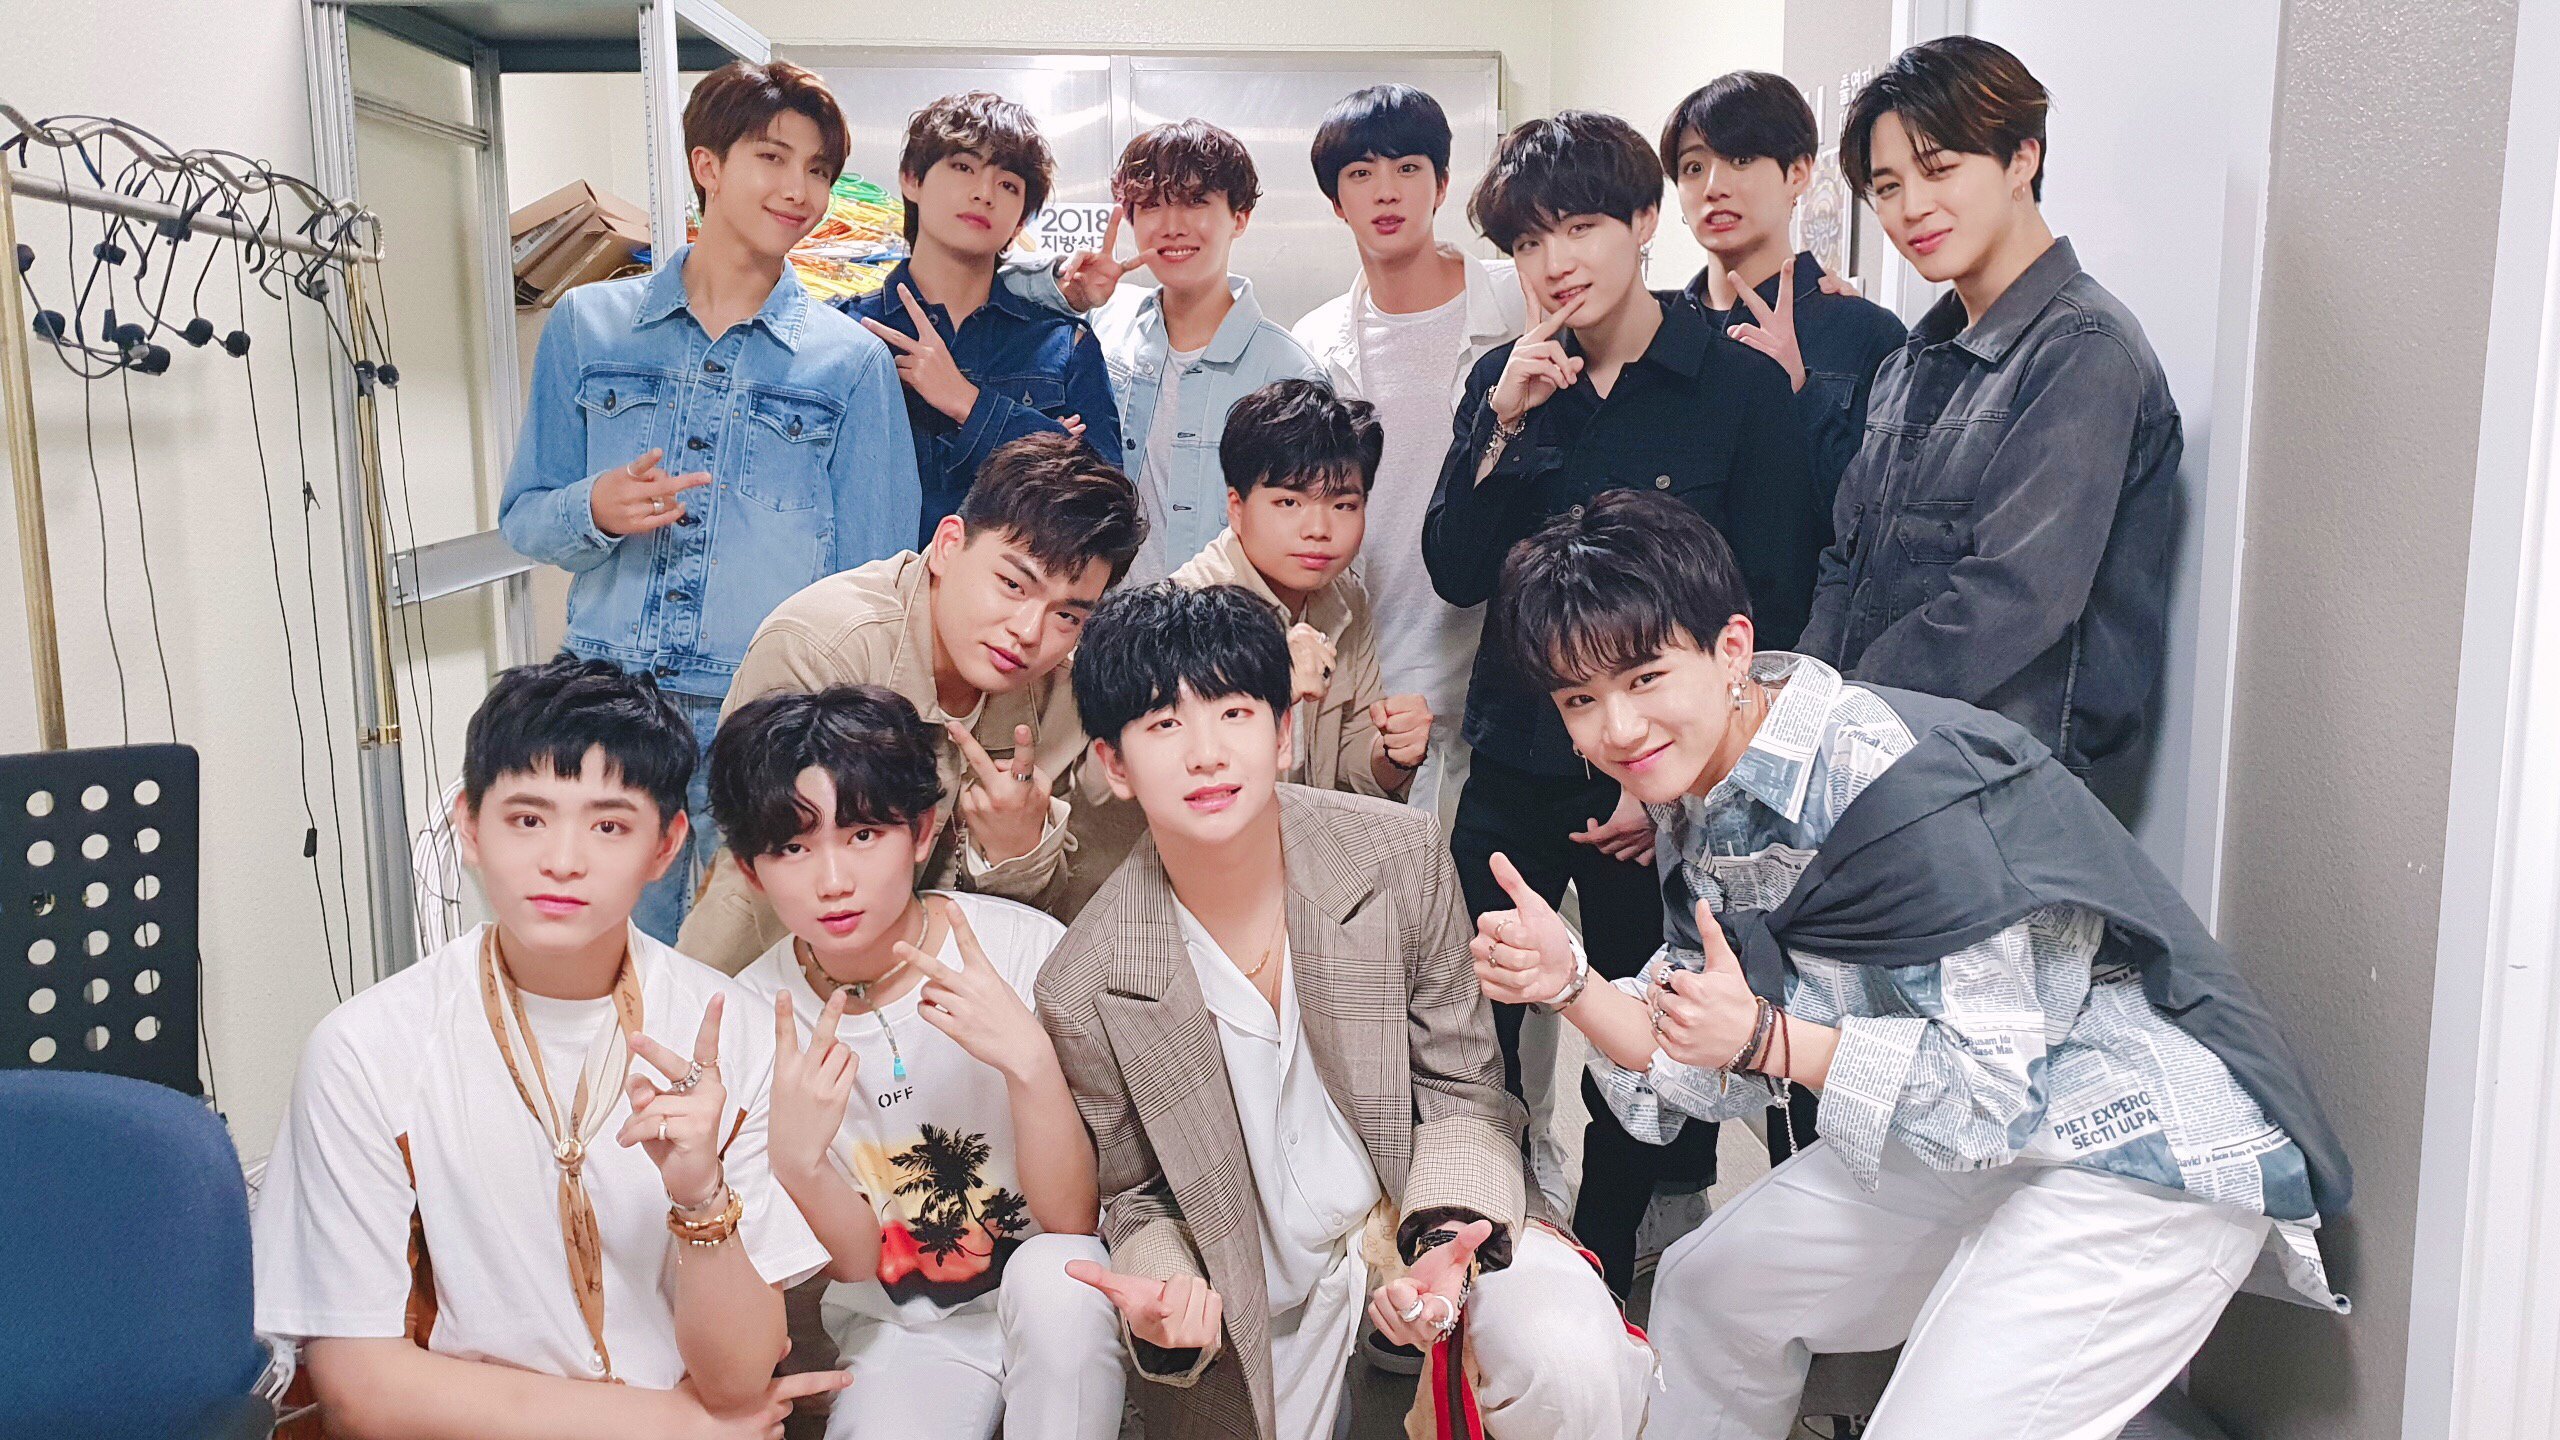 9cda demov4luwaajnpj - [Picture] BTS with boy group The East Light [180601]